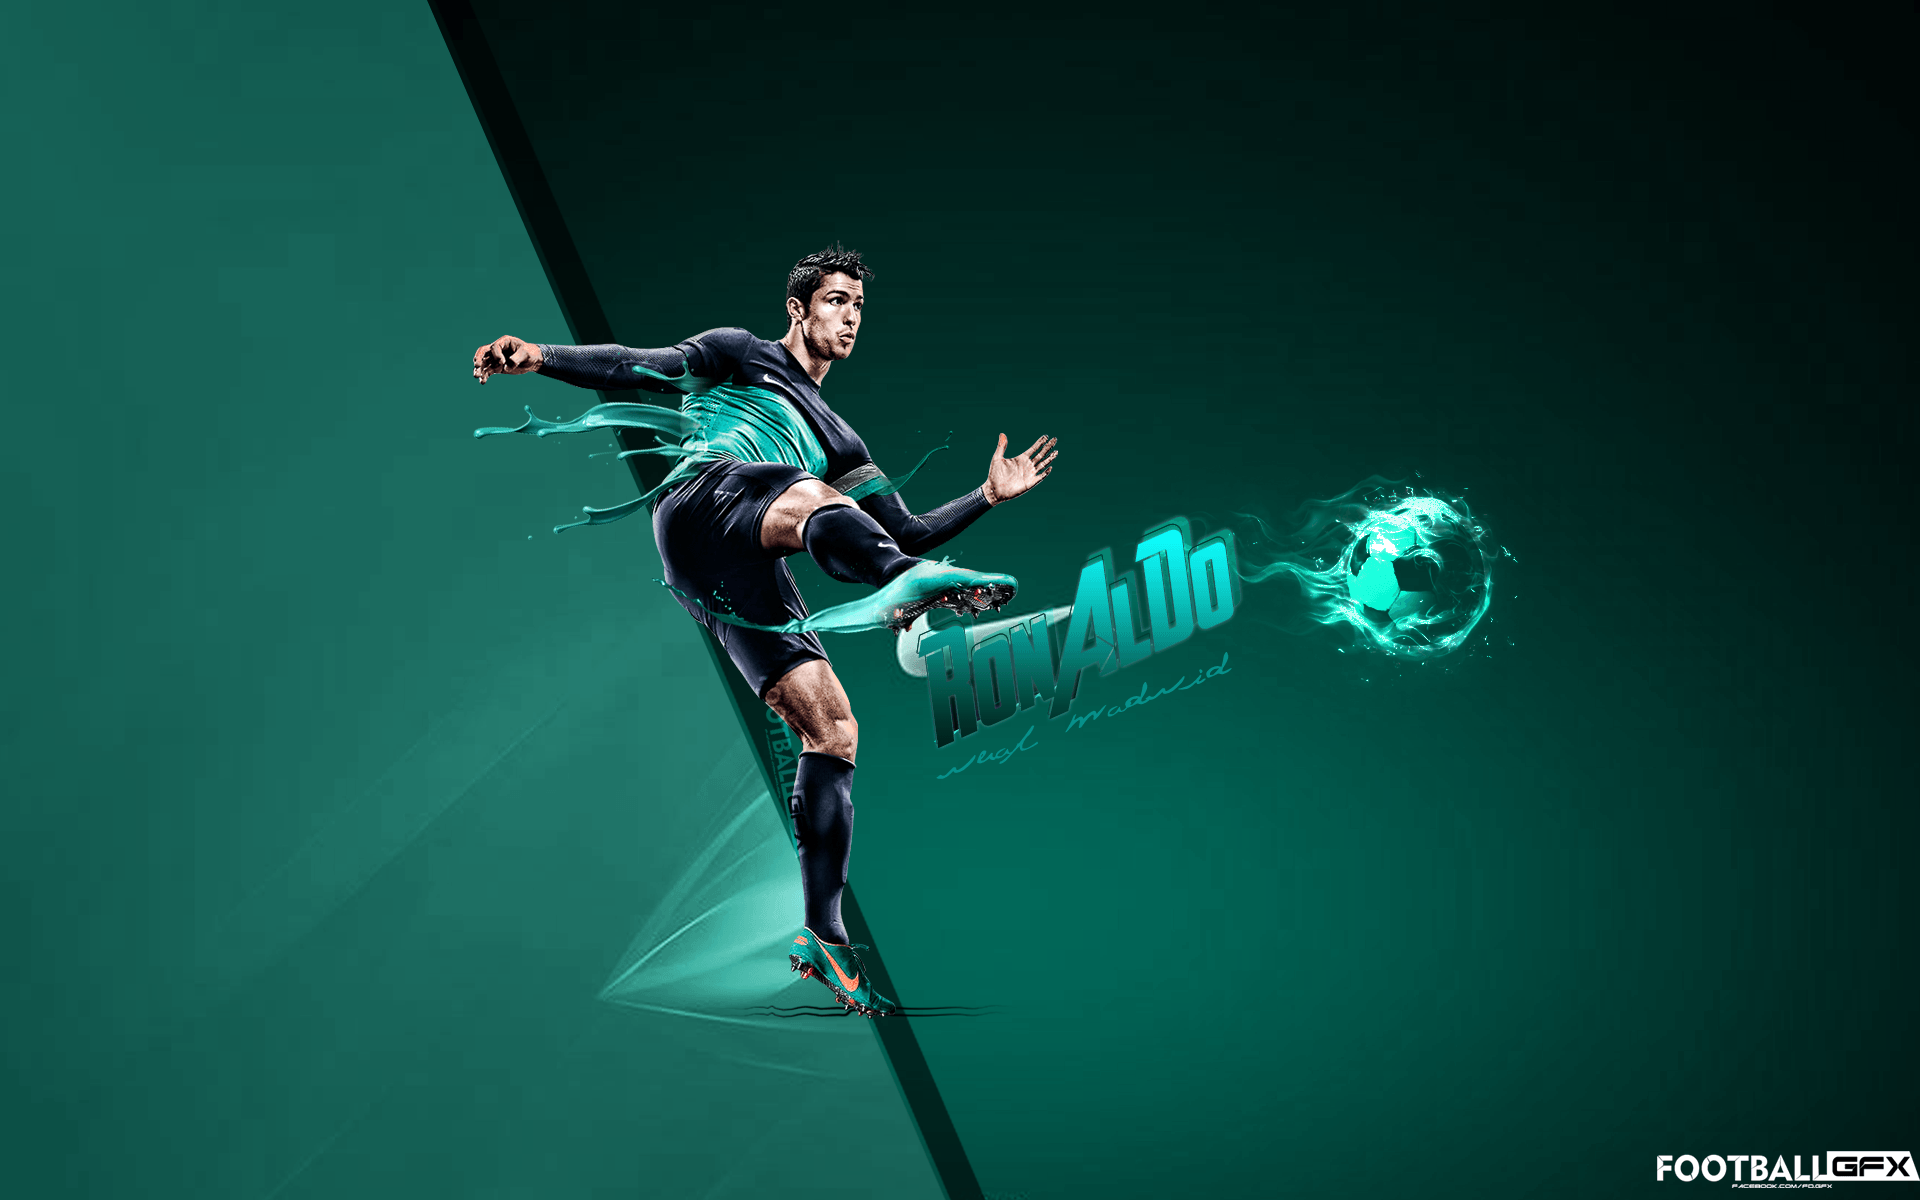 Cr7 Wallpaper Hd: Cristiano Ronaldo Wallpapers 2015 Nike